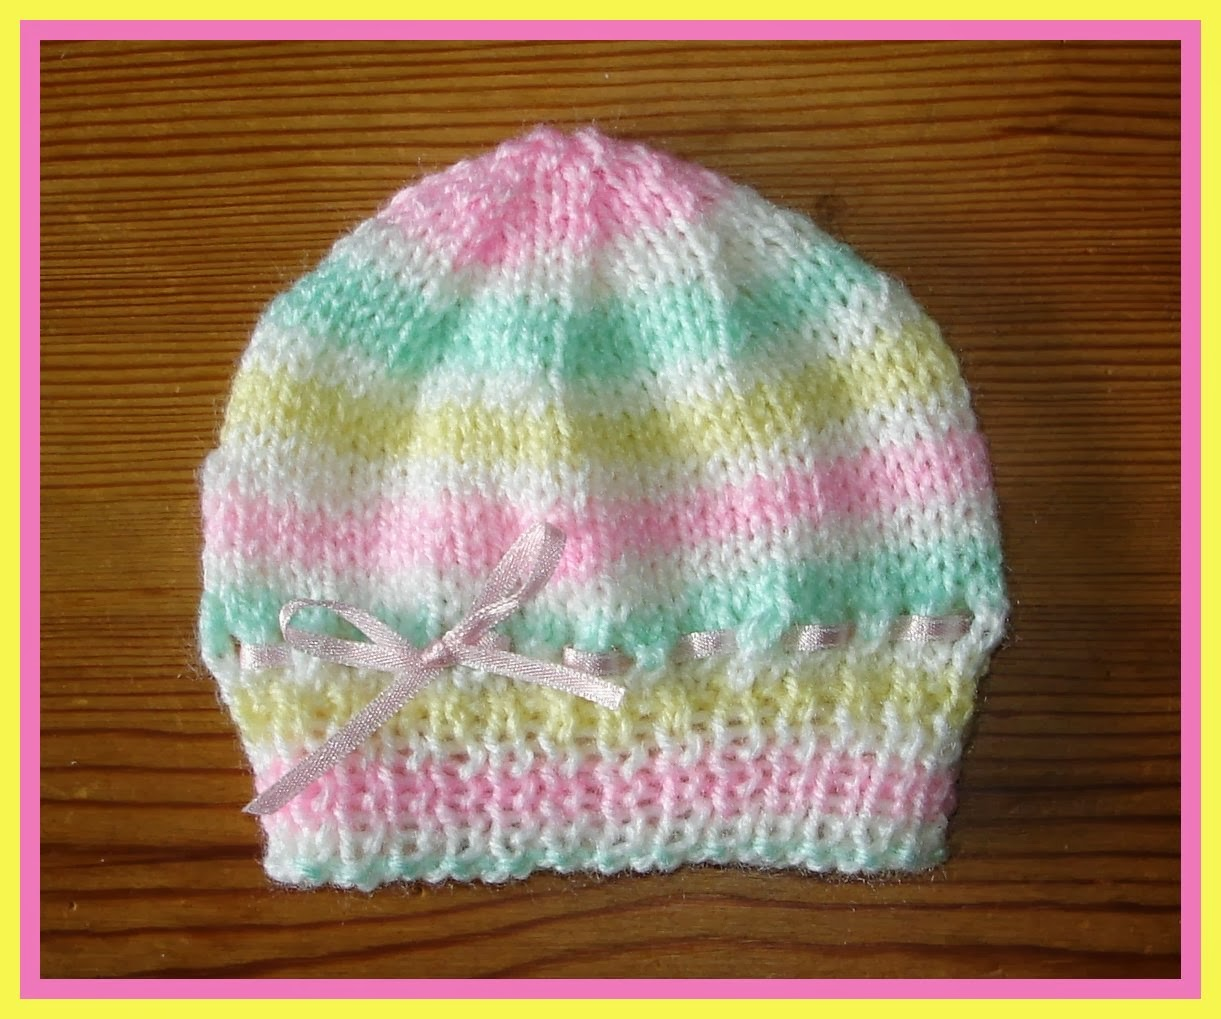 Knit Baby Hats Pattern : mariannas lazy daisy days: Candystripe Knitted Baby Hats